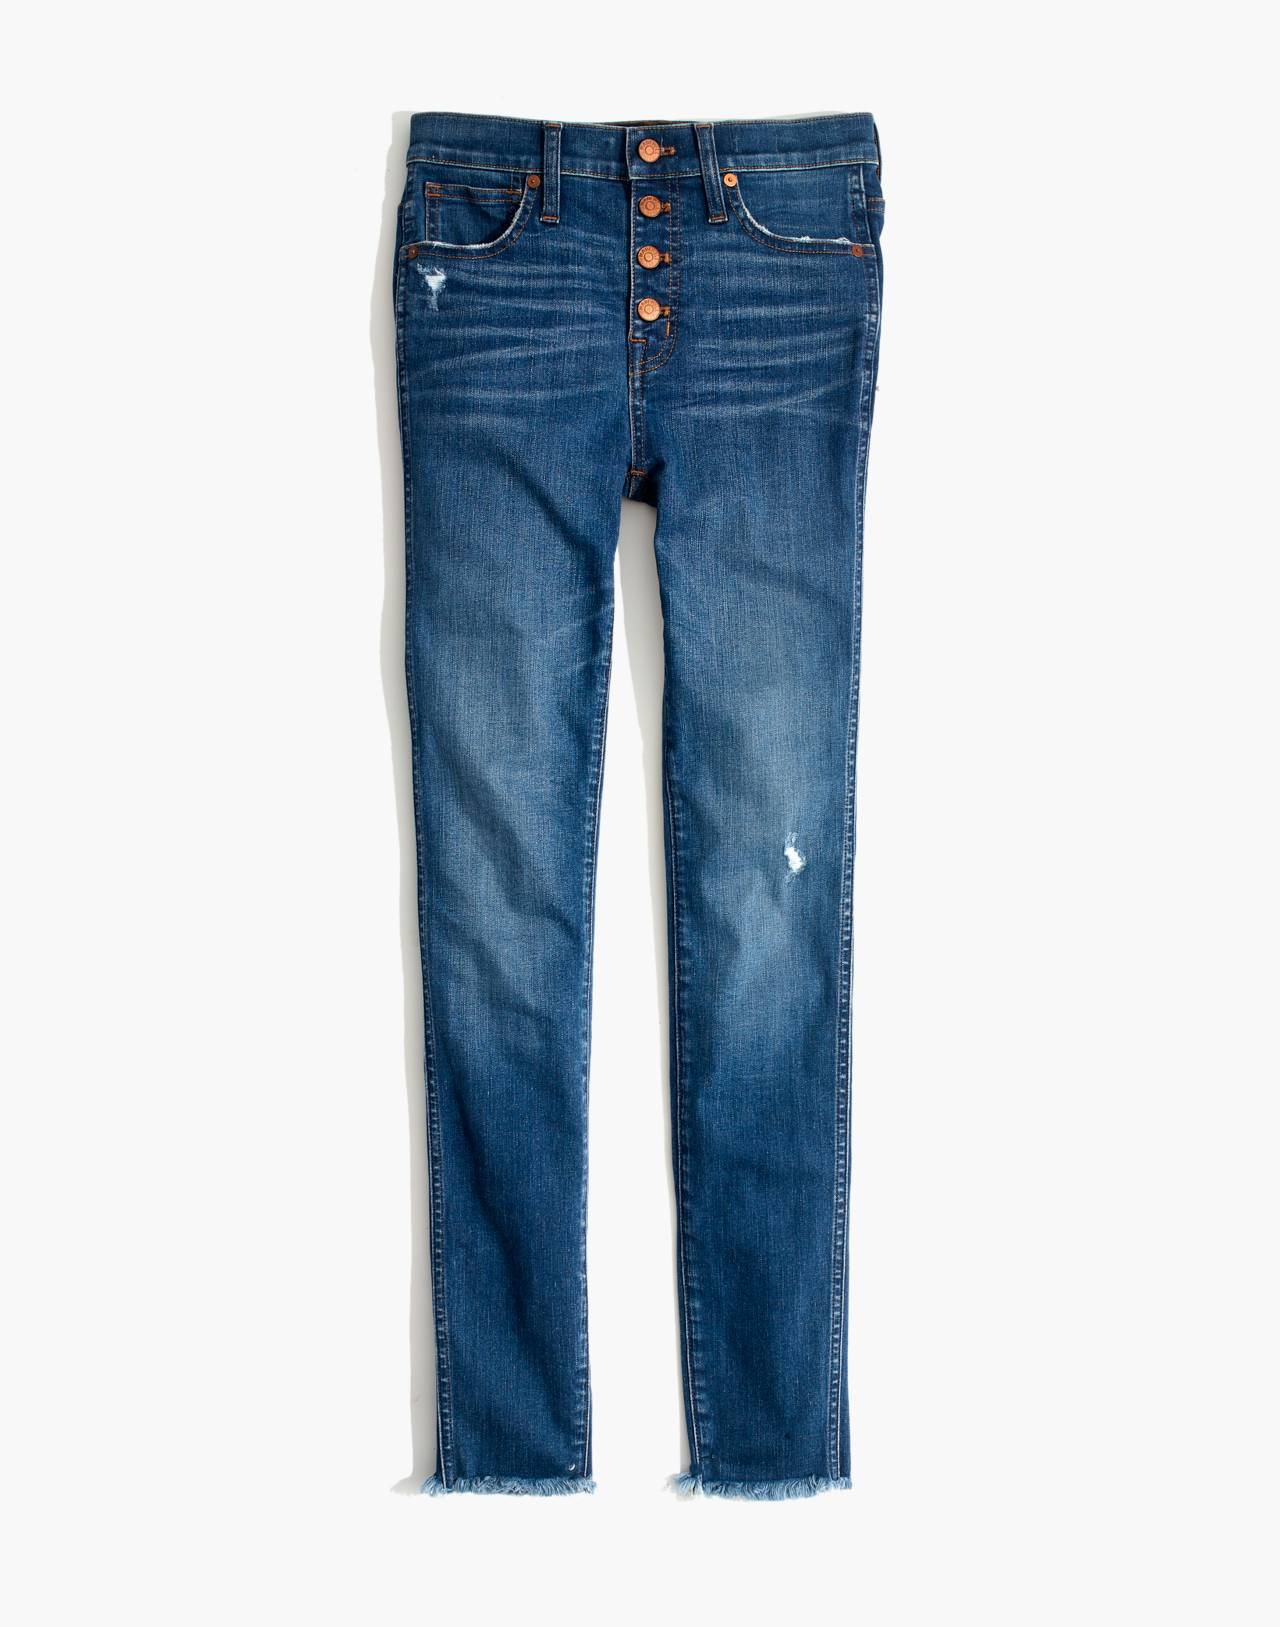 "Taller 10"" High-Rise Skinny Jeans in Hanna Wash in hanna wash image 4"